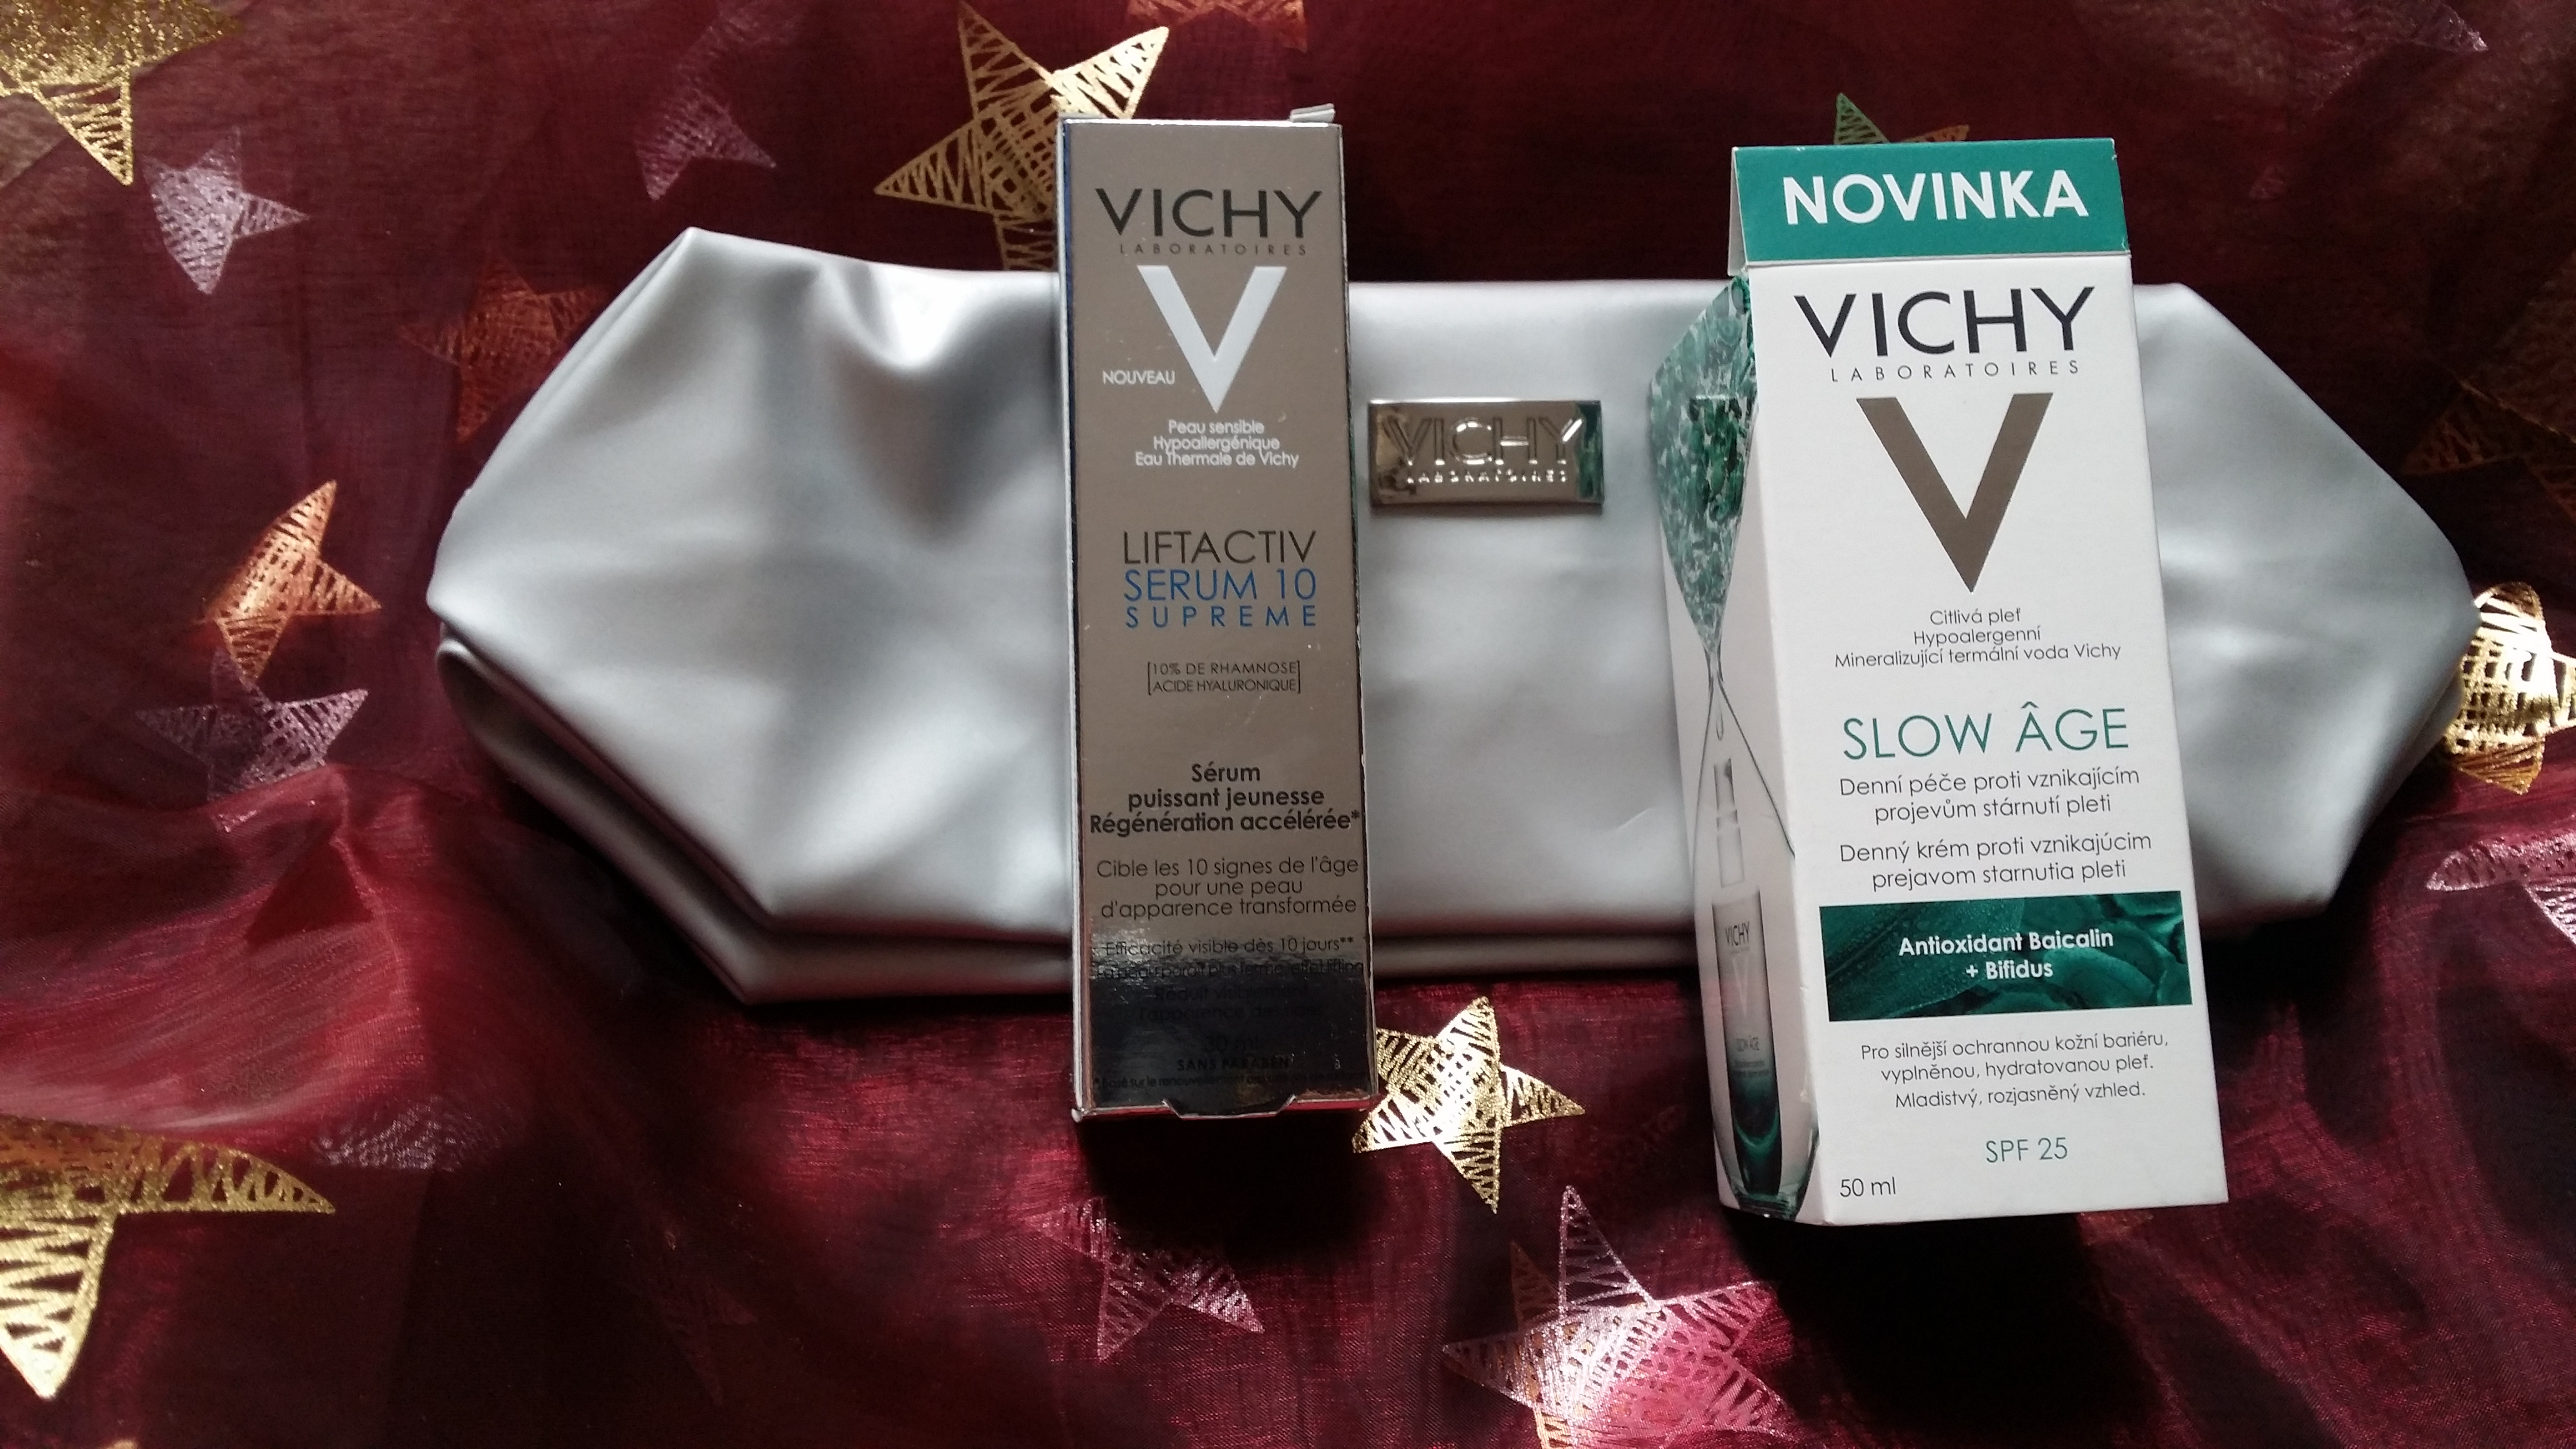 VICHY Vánoce 2 - Liftactiv serum plus Slow Age